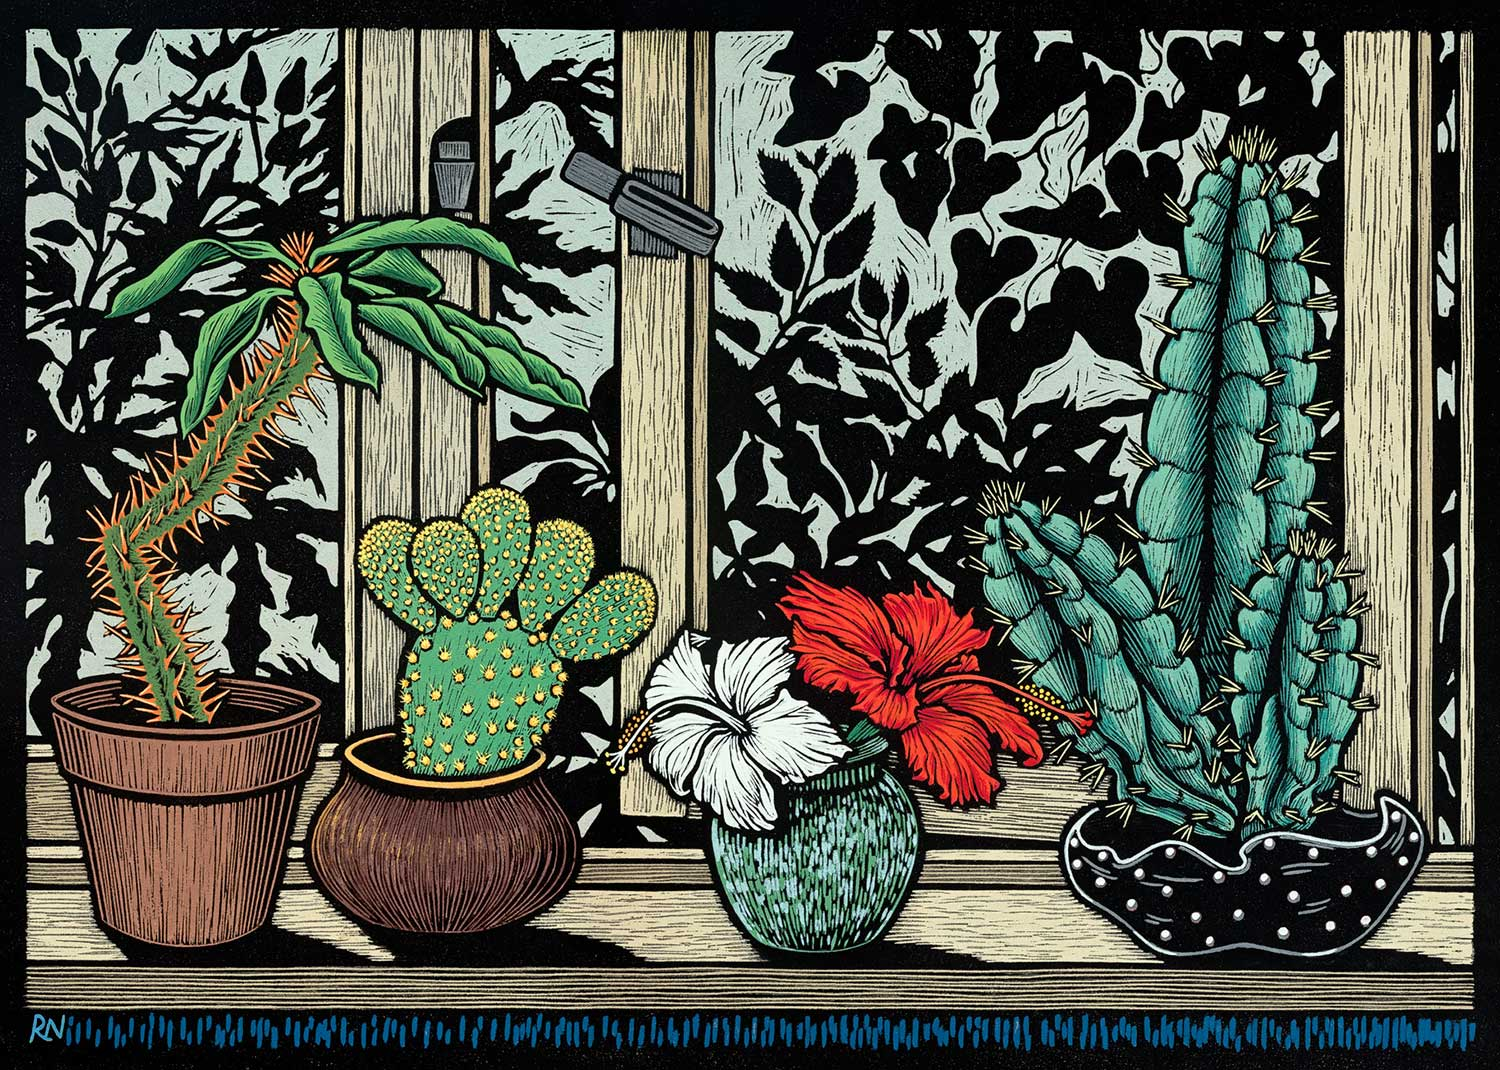 Windowsill  45 x 61 cm, edition of 50  pigment print of a hand-coloured linocut on japanese paper  $1,250